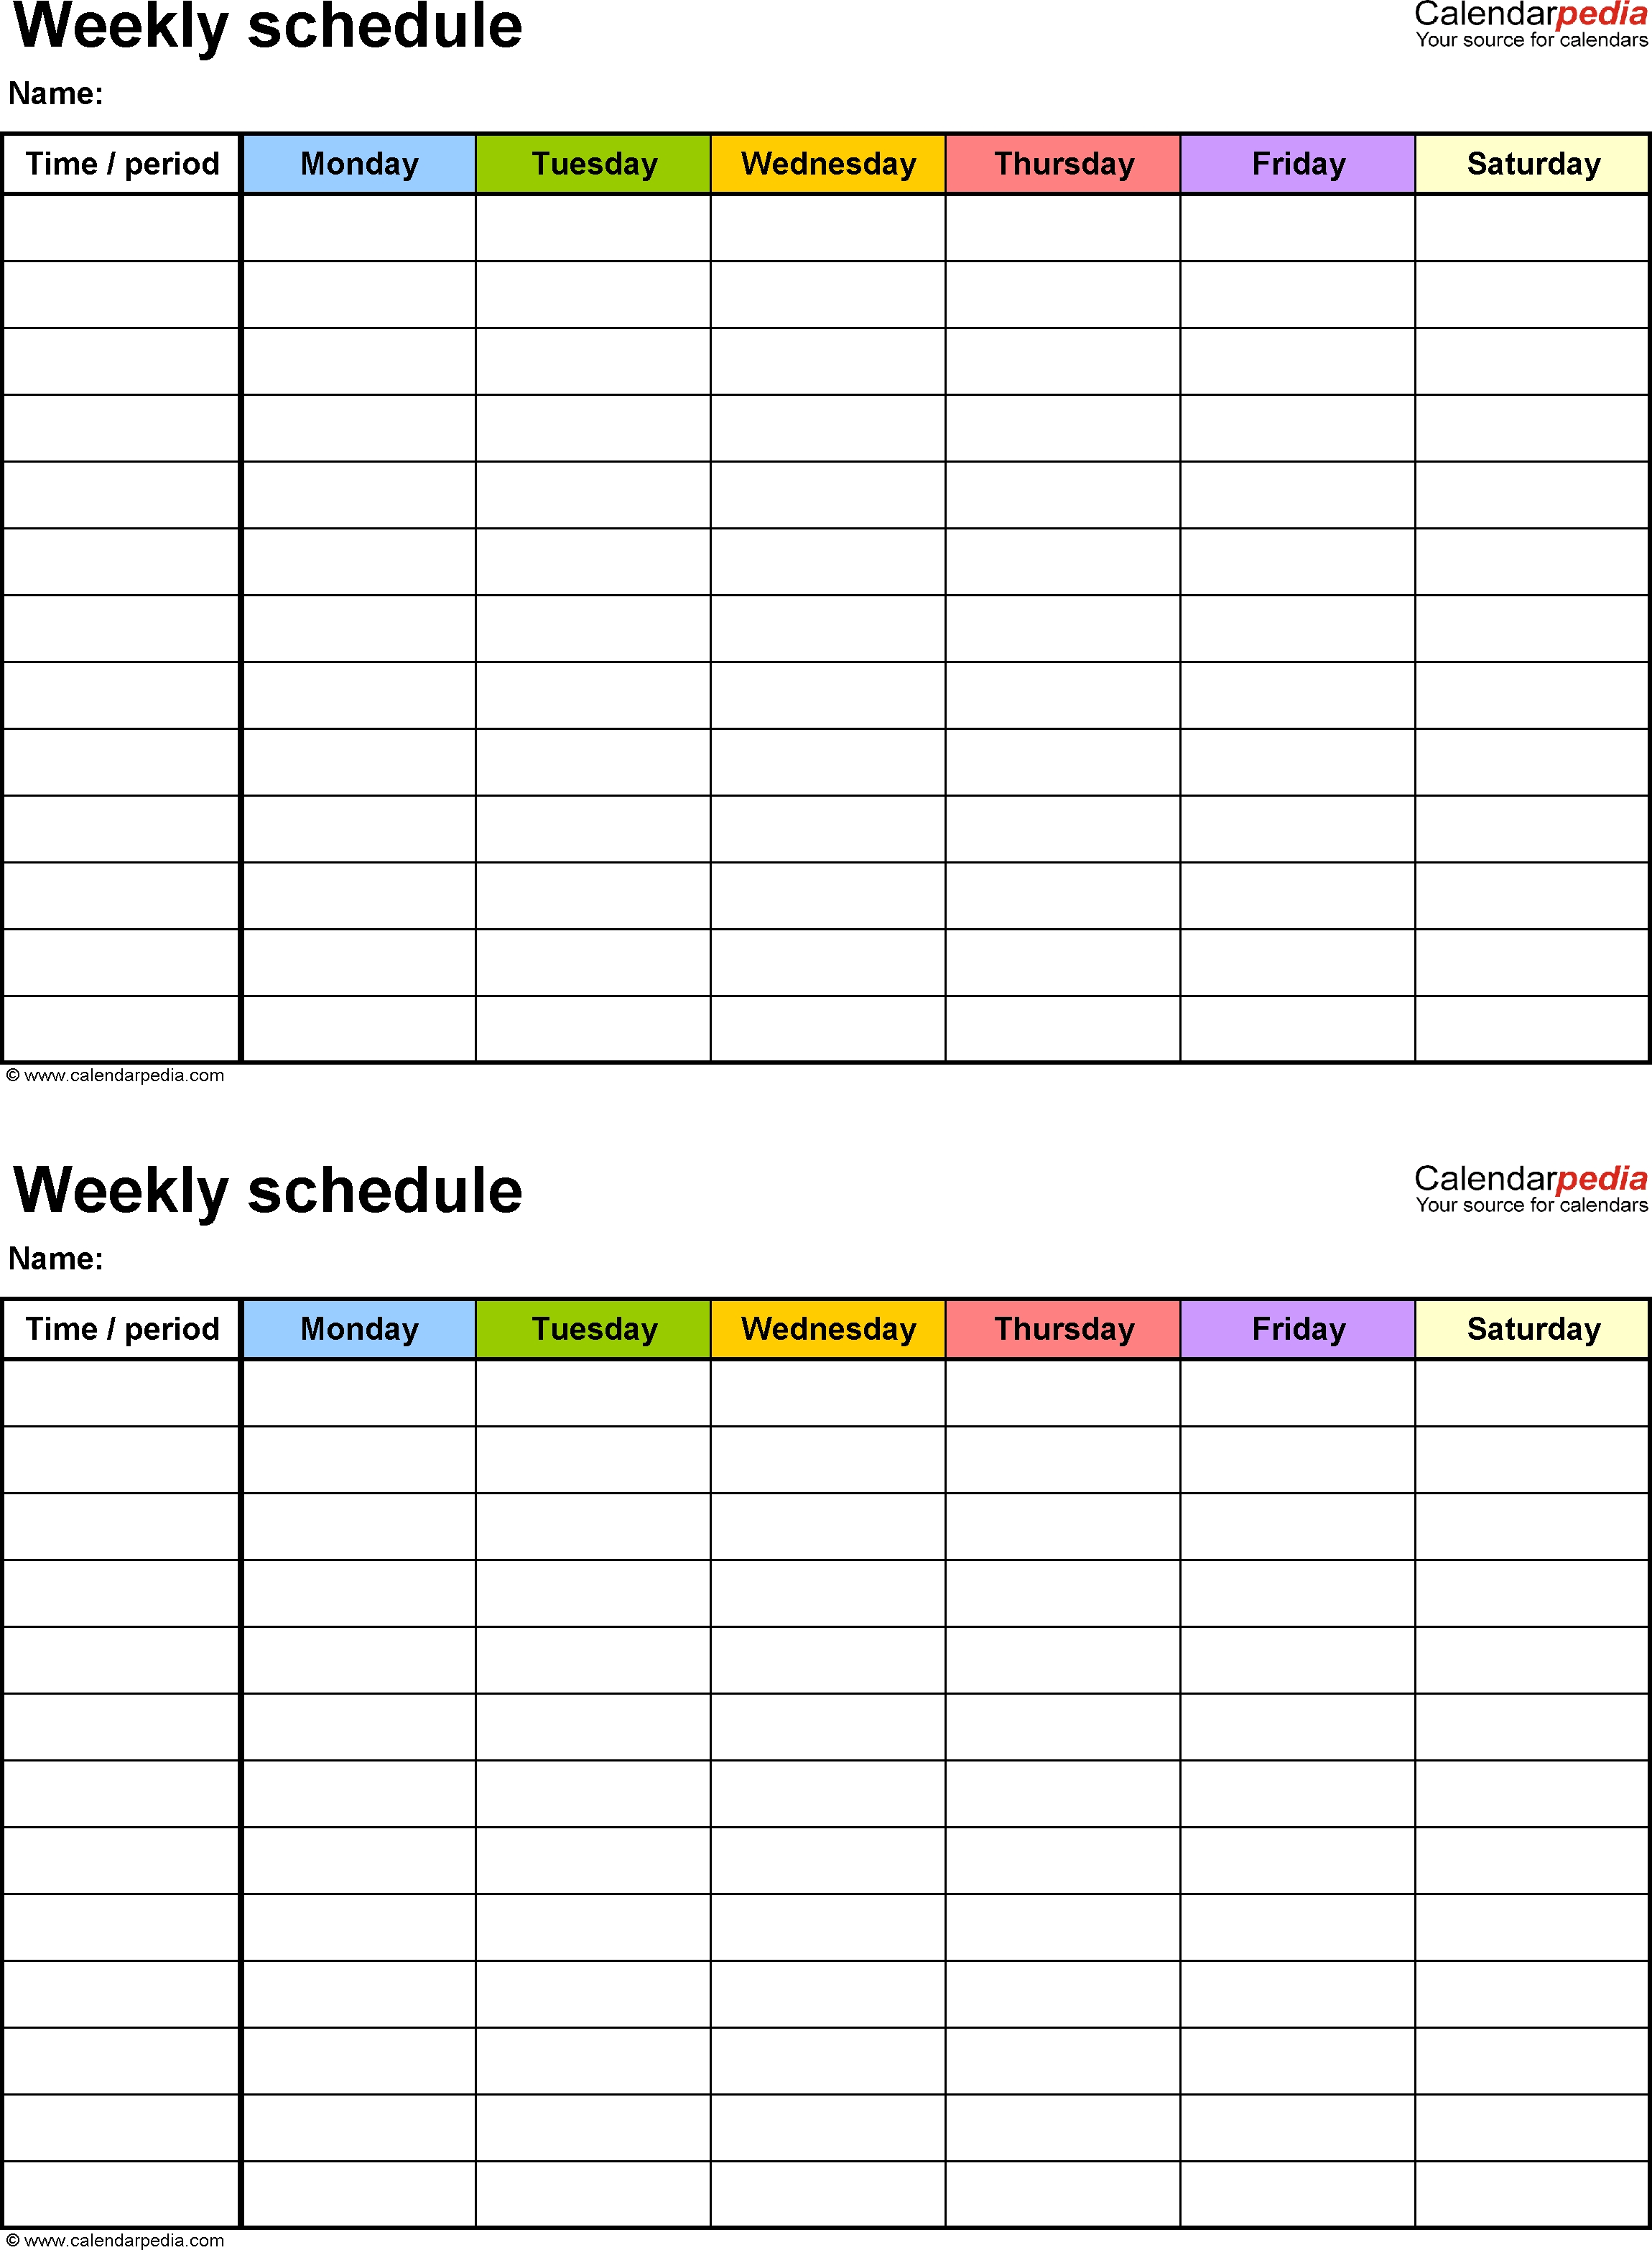 Free Weekly Schedule Templates For Word - 18 Templates in Fill In Blank Weekly Calendar Templates